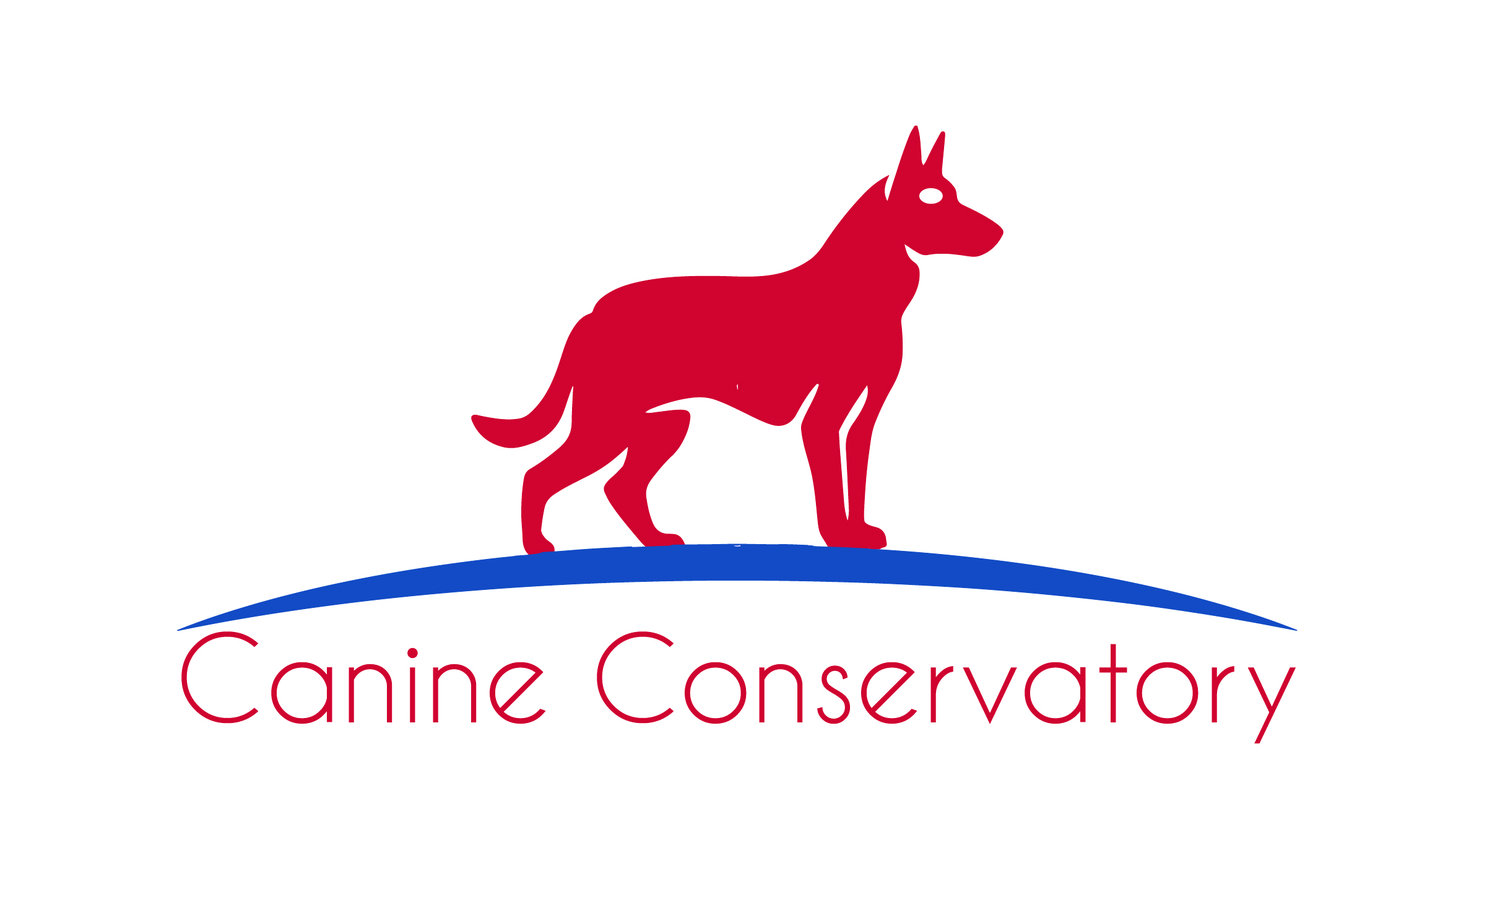 Canine Conservatory